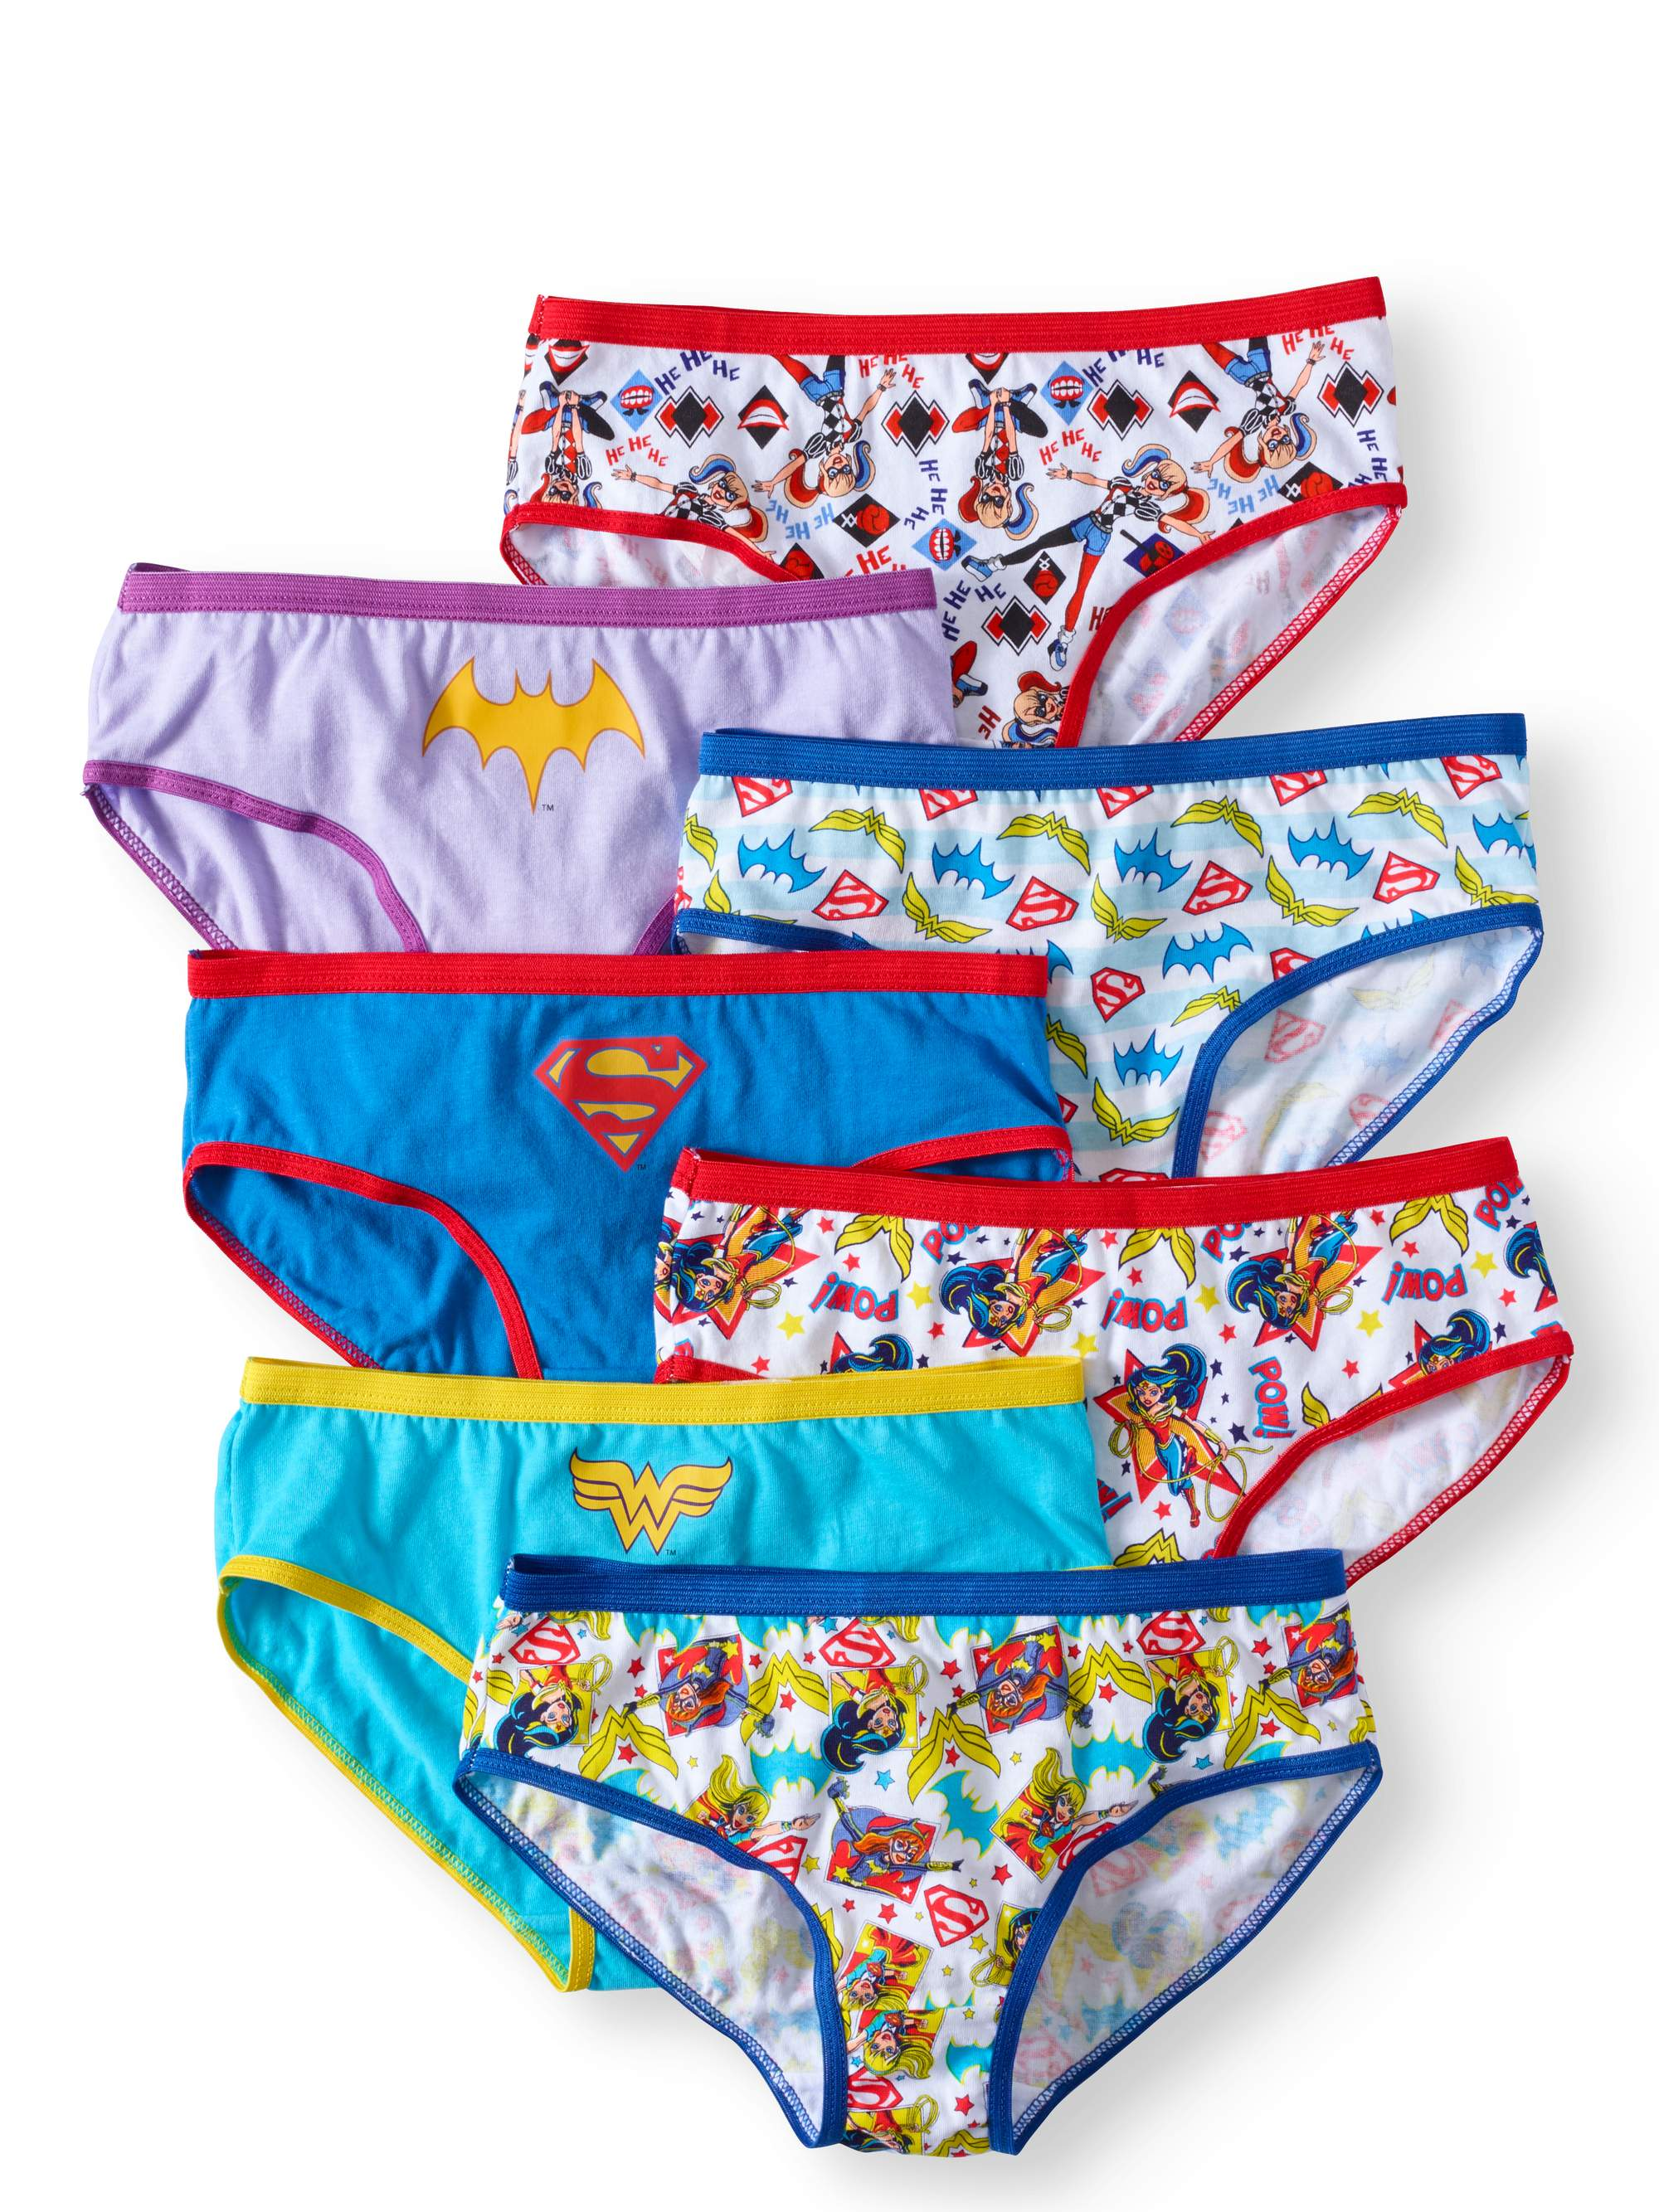 DC Superhero Girls, Girls Underwear, 7 Pack Panties Sizes 4 - 8